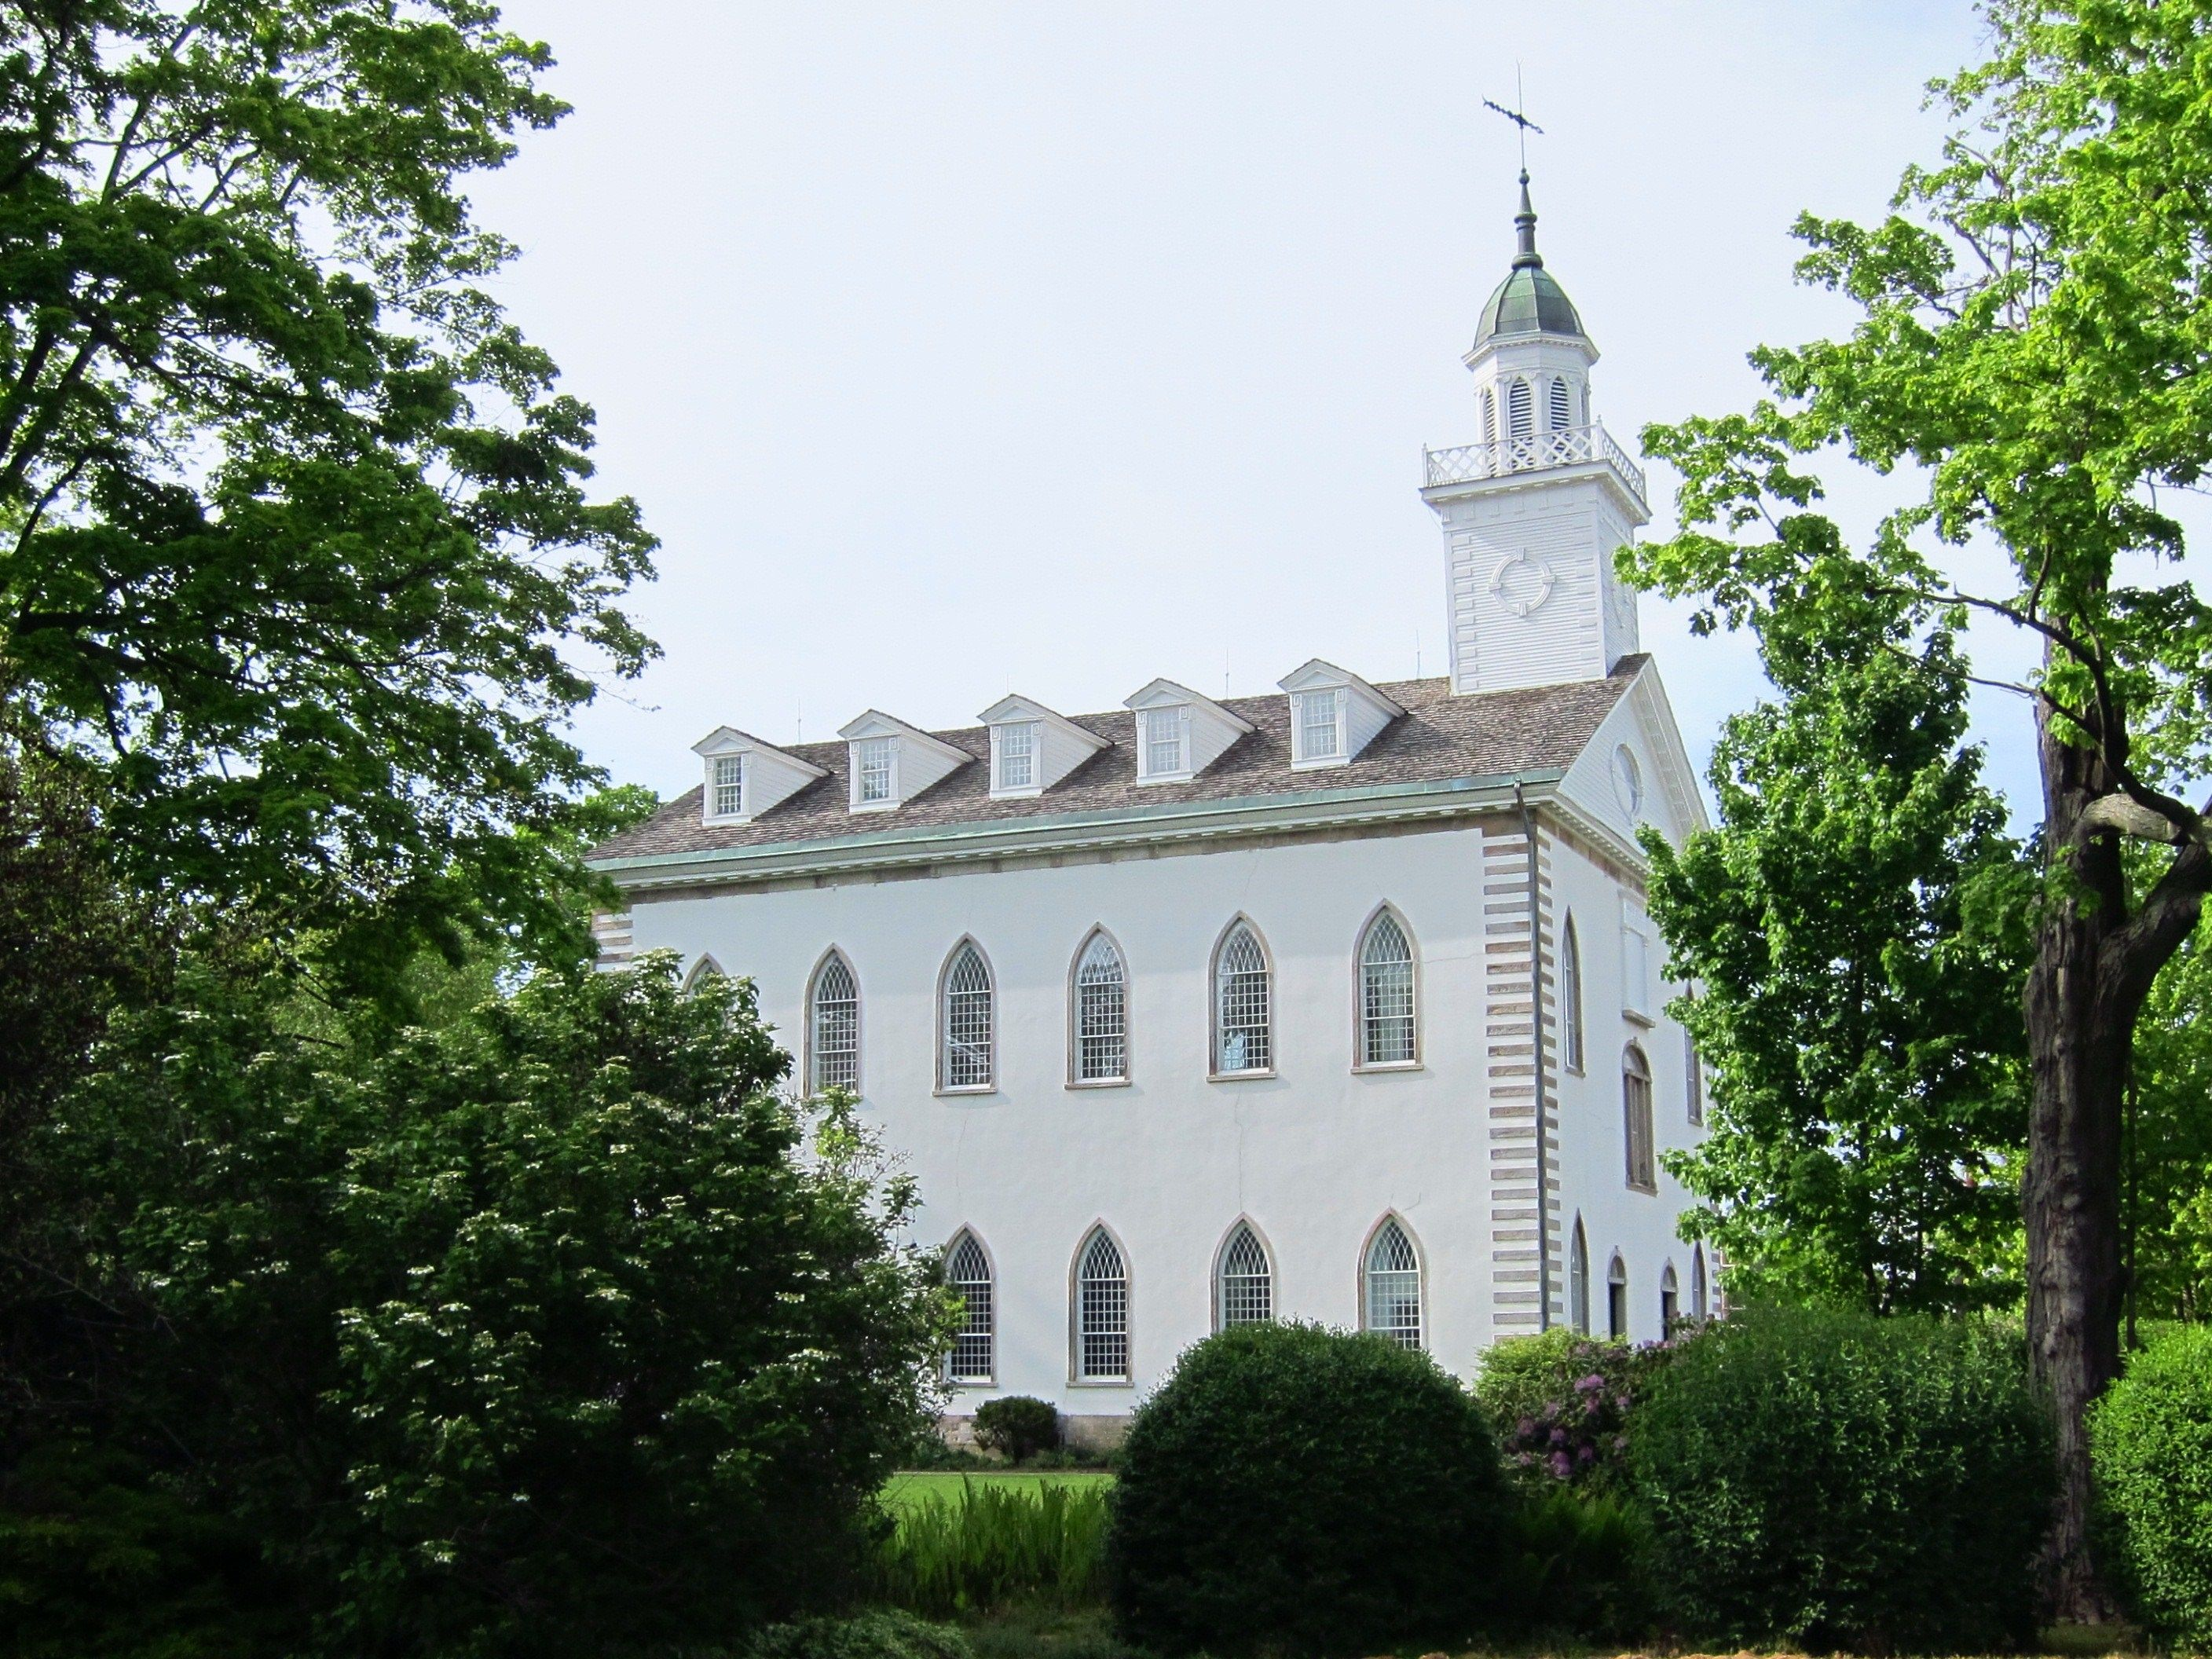 The Kirtland Temple side view, including scenery.